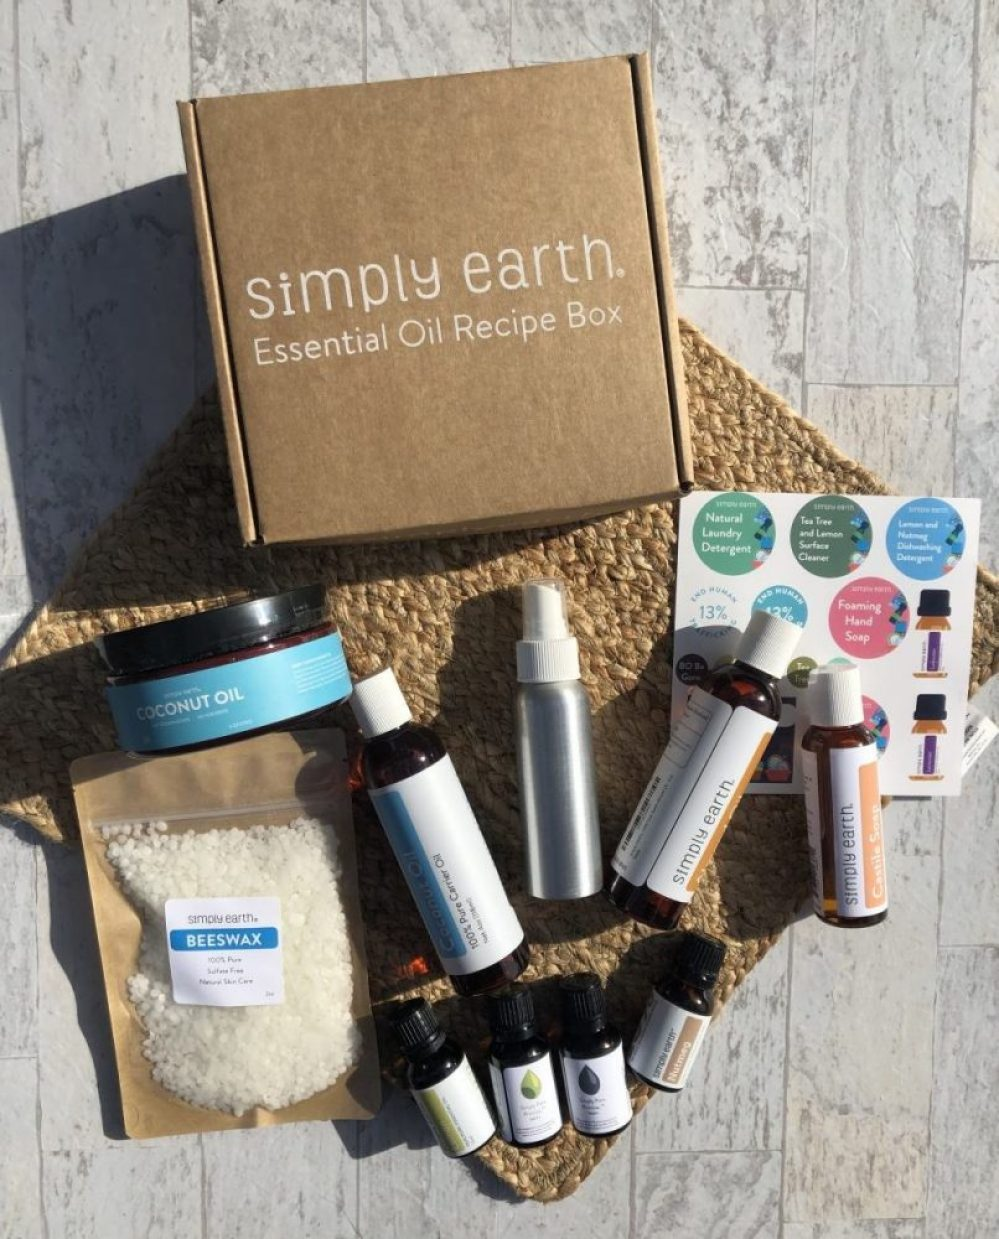 Simply Earth Essential Oils Monthly Subscribe Box - Honest Review 73